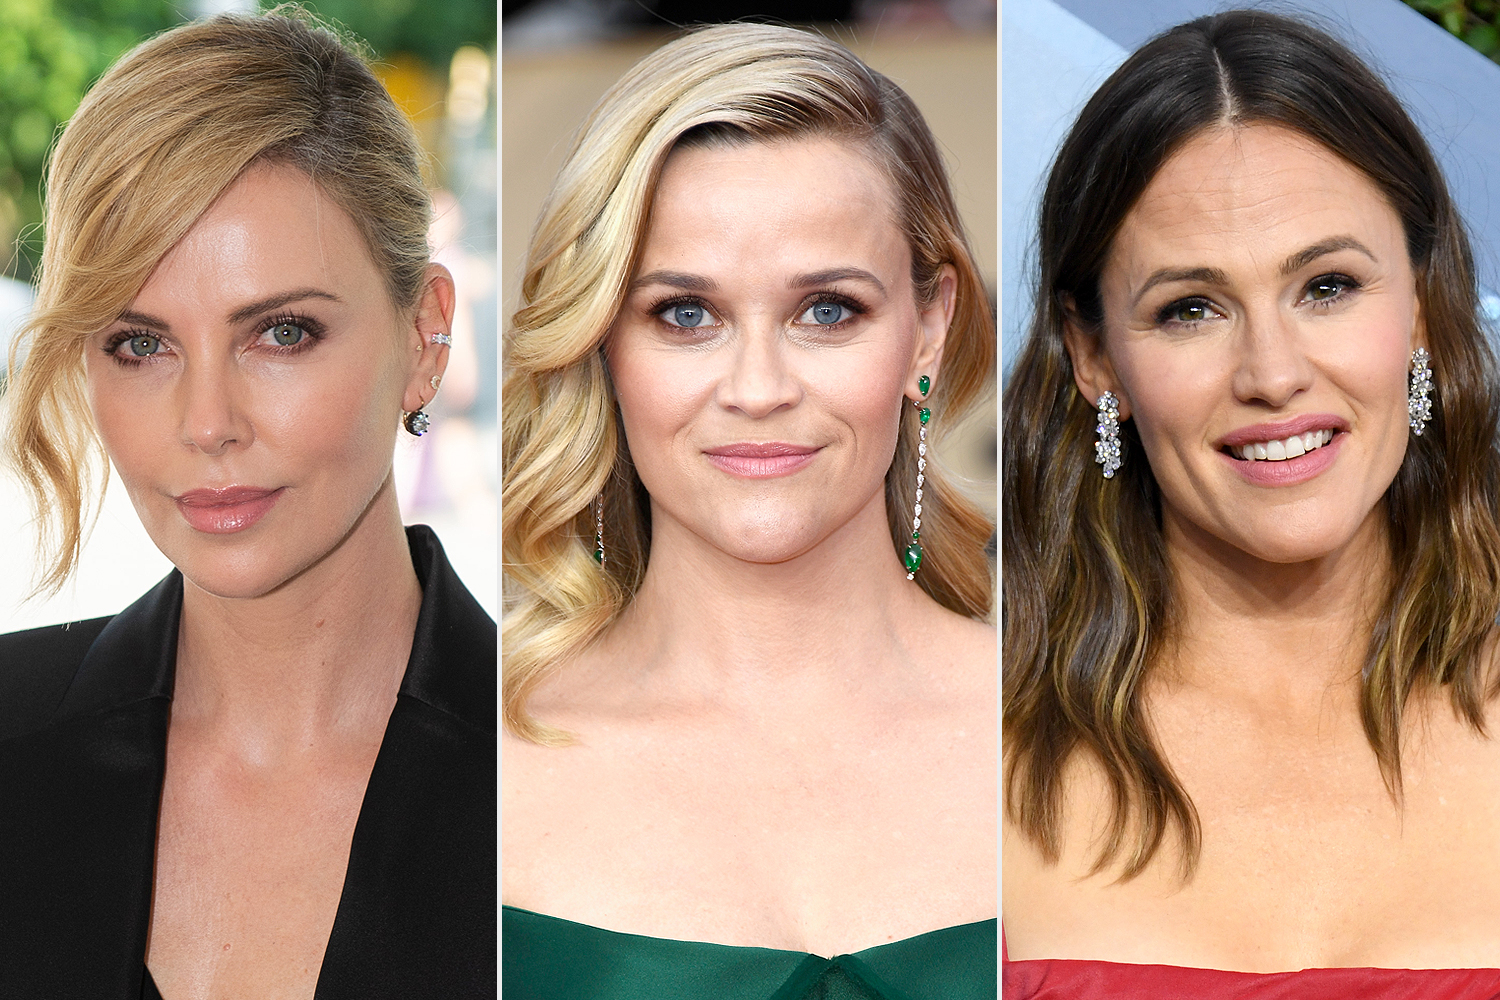 Charlize Theron, Reese Witherspoon, Jennifer Garner